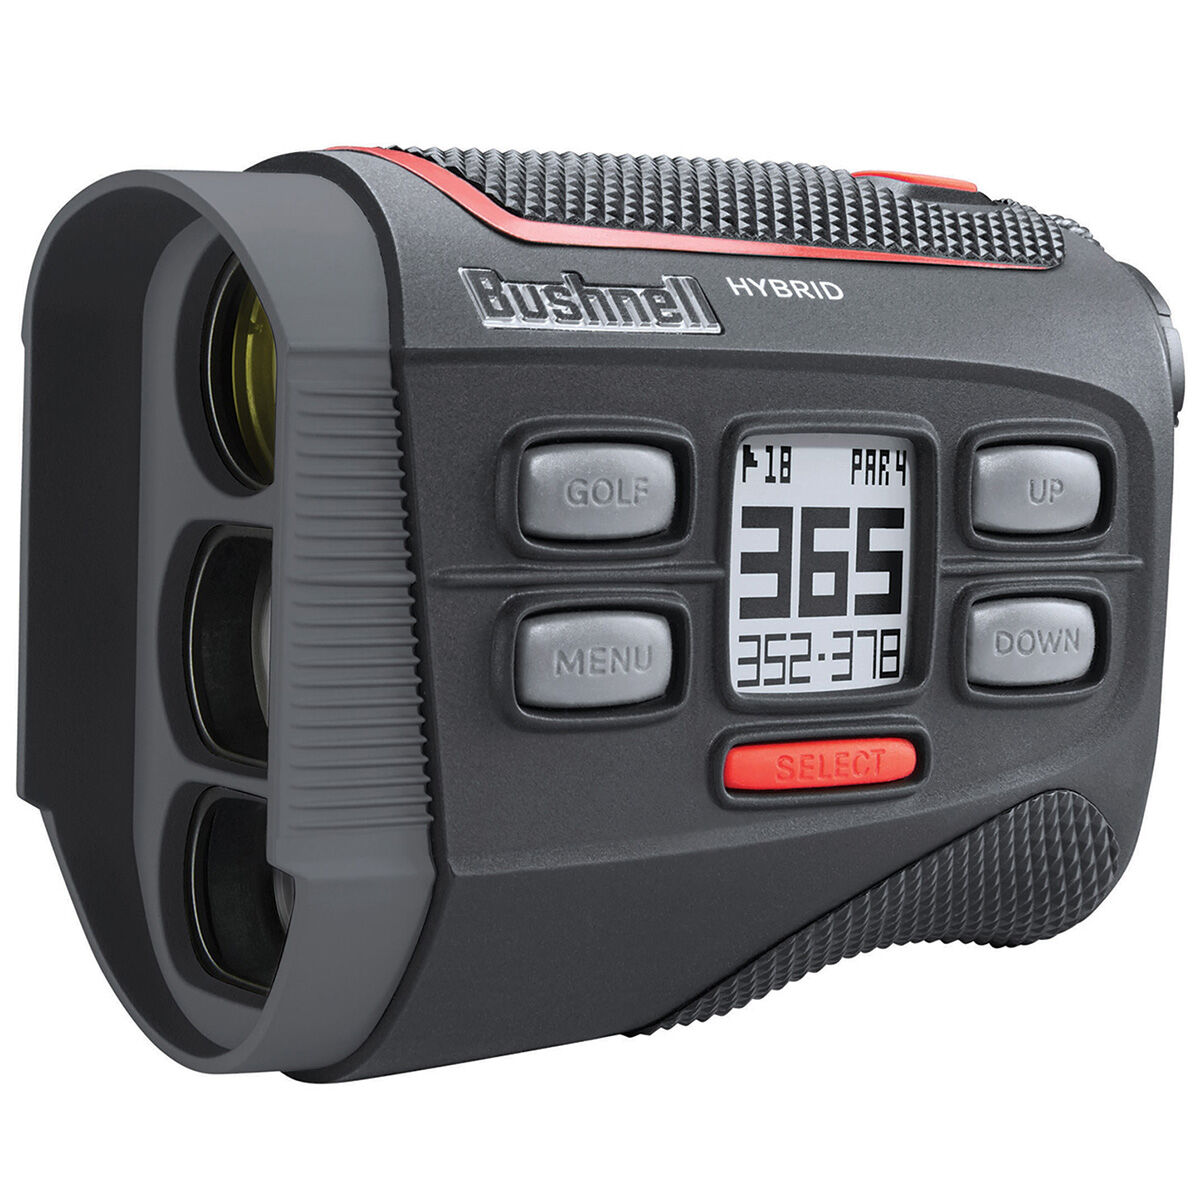 Bushnell Black and Red Hybrid V2 Handheld Golf Rangefinder